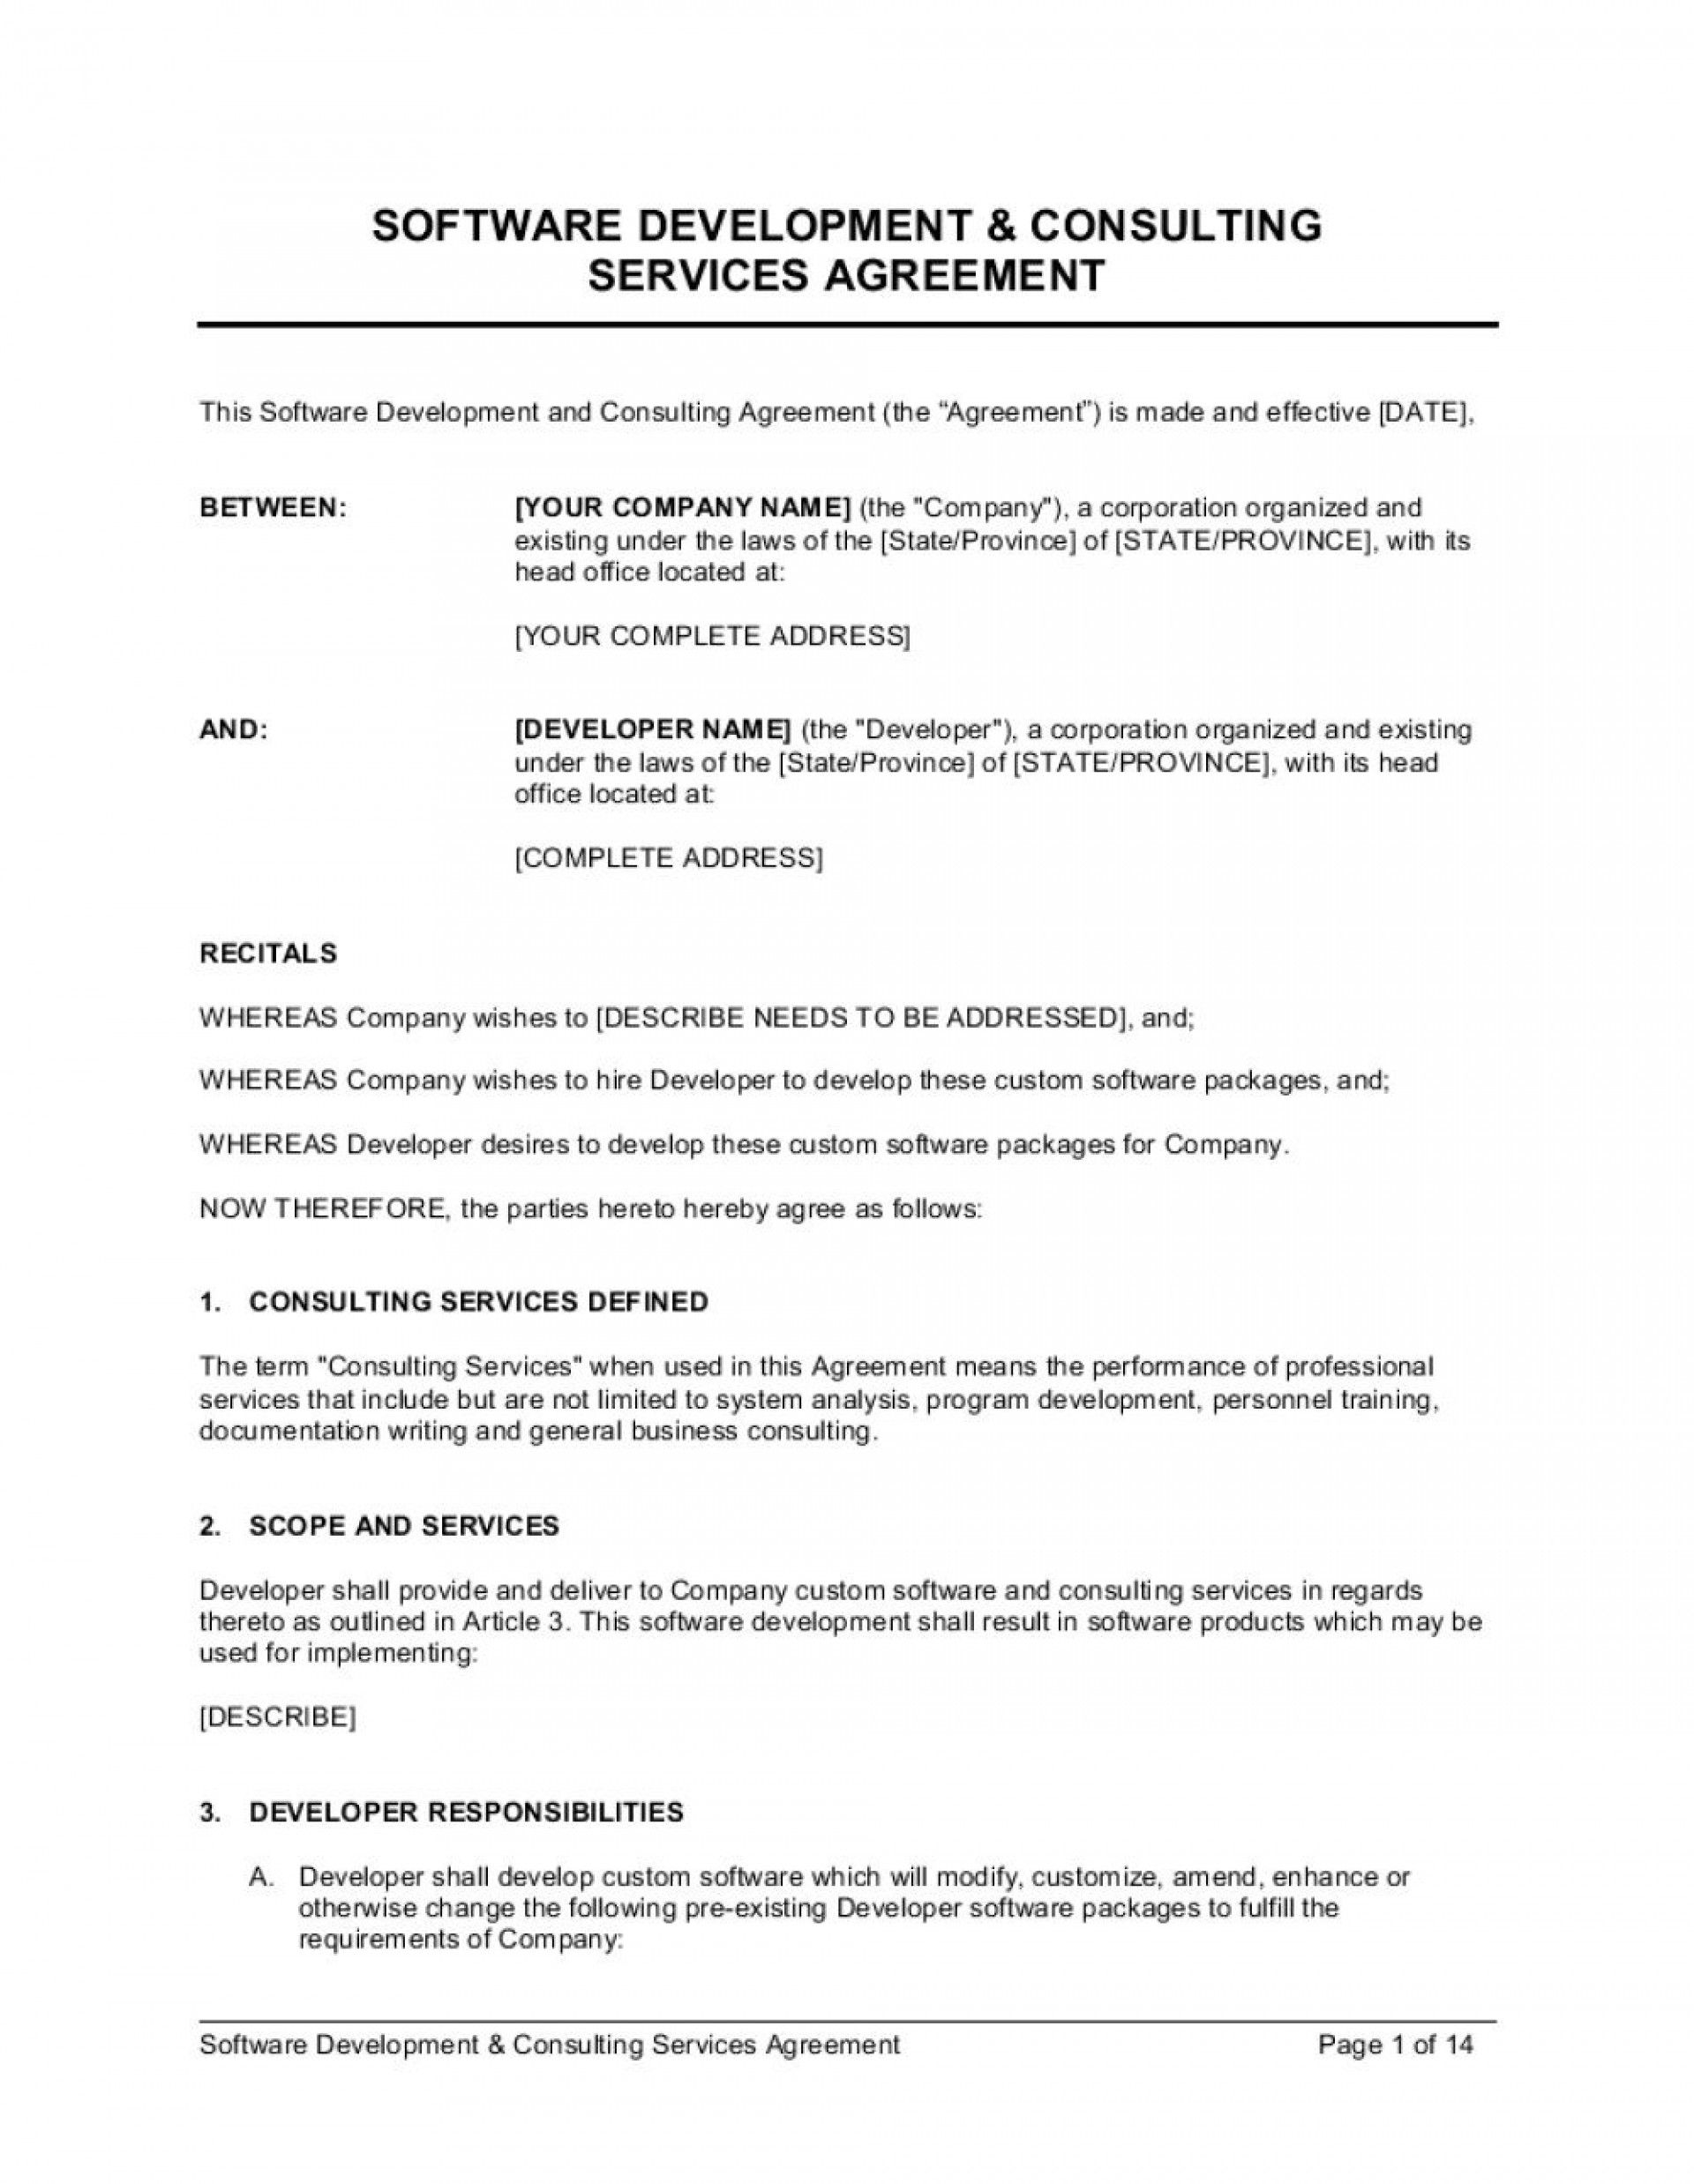 008 Wonderful Consulting Agreement Template Word High Resolution  Sample Free1920